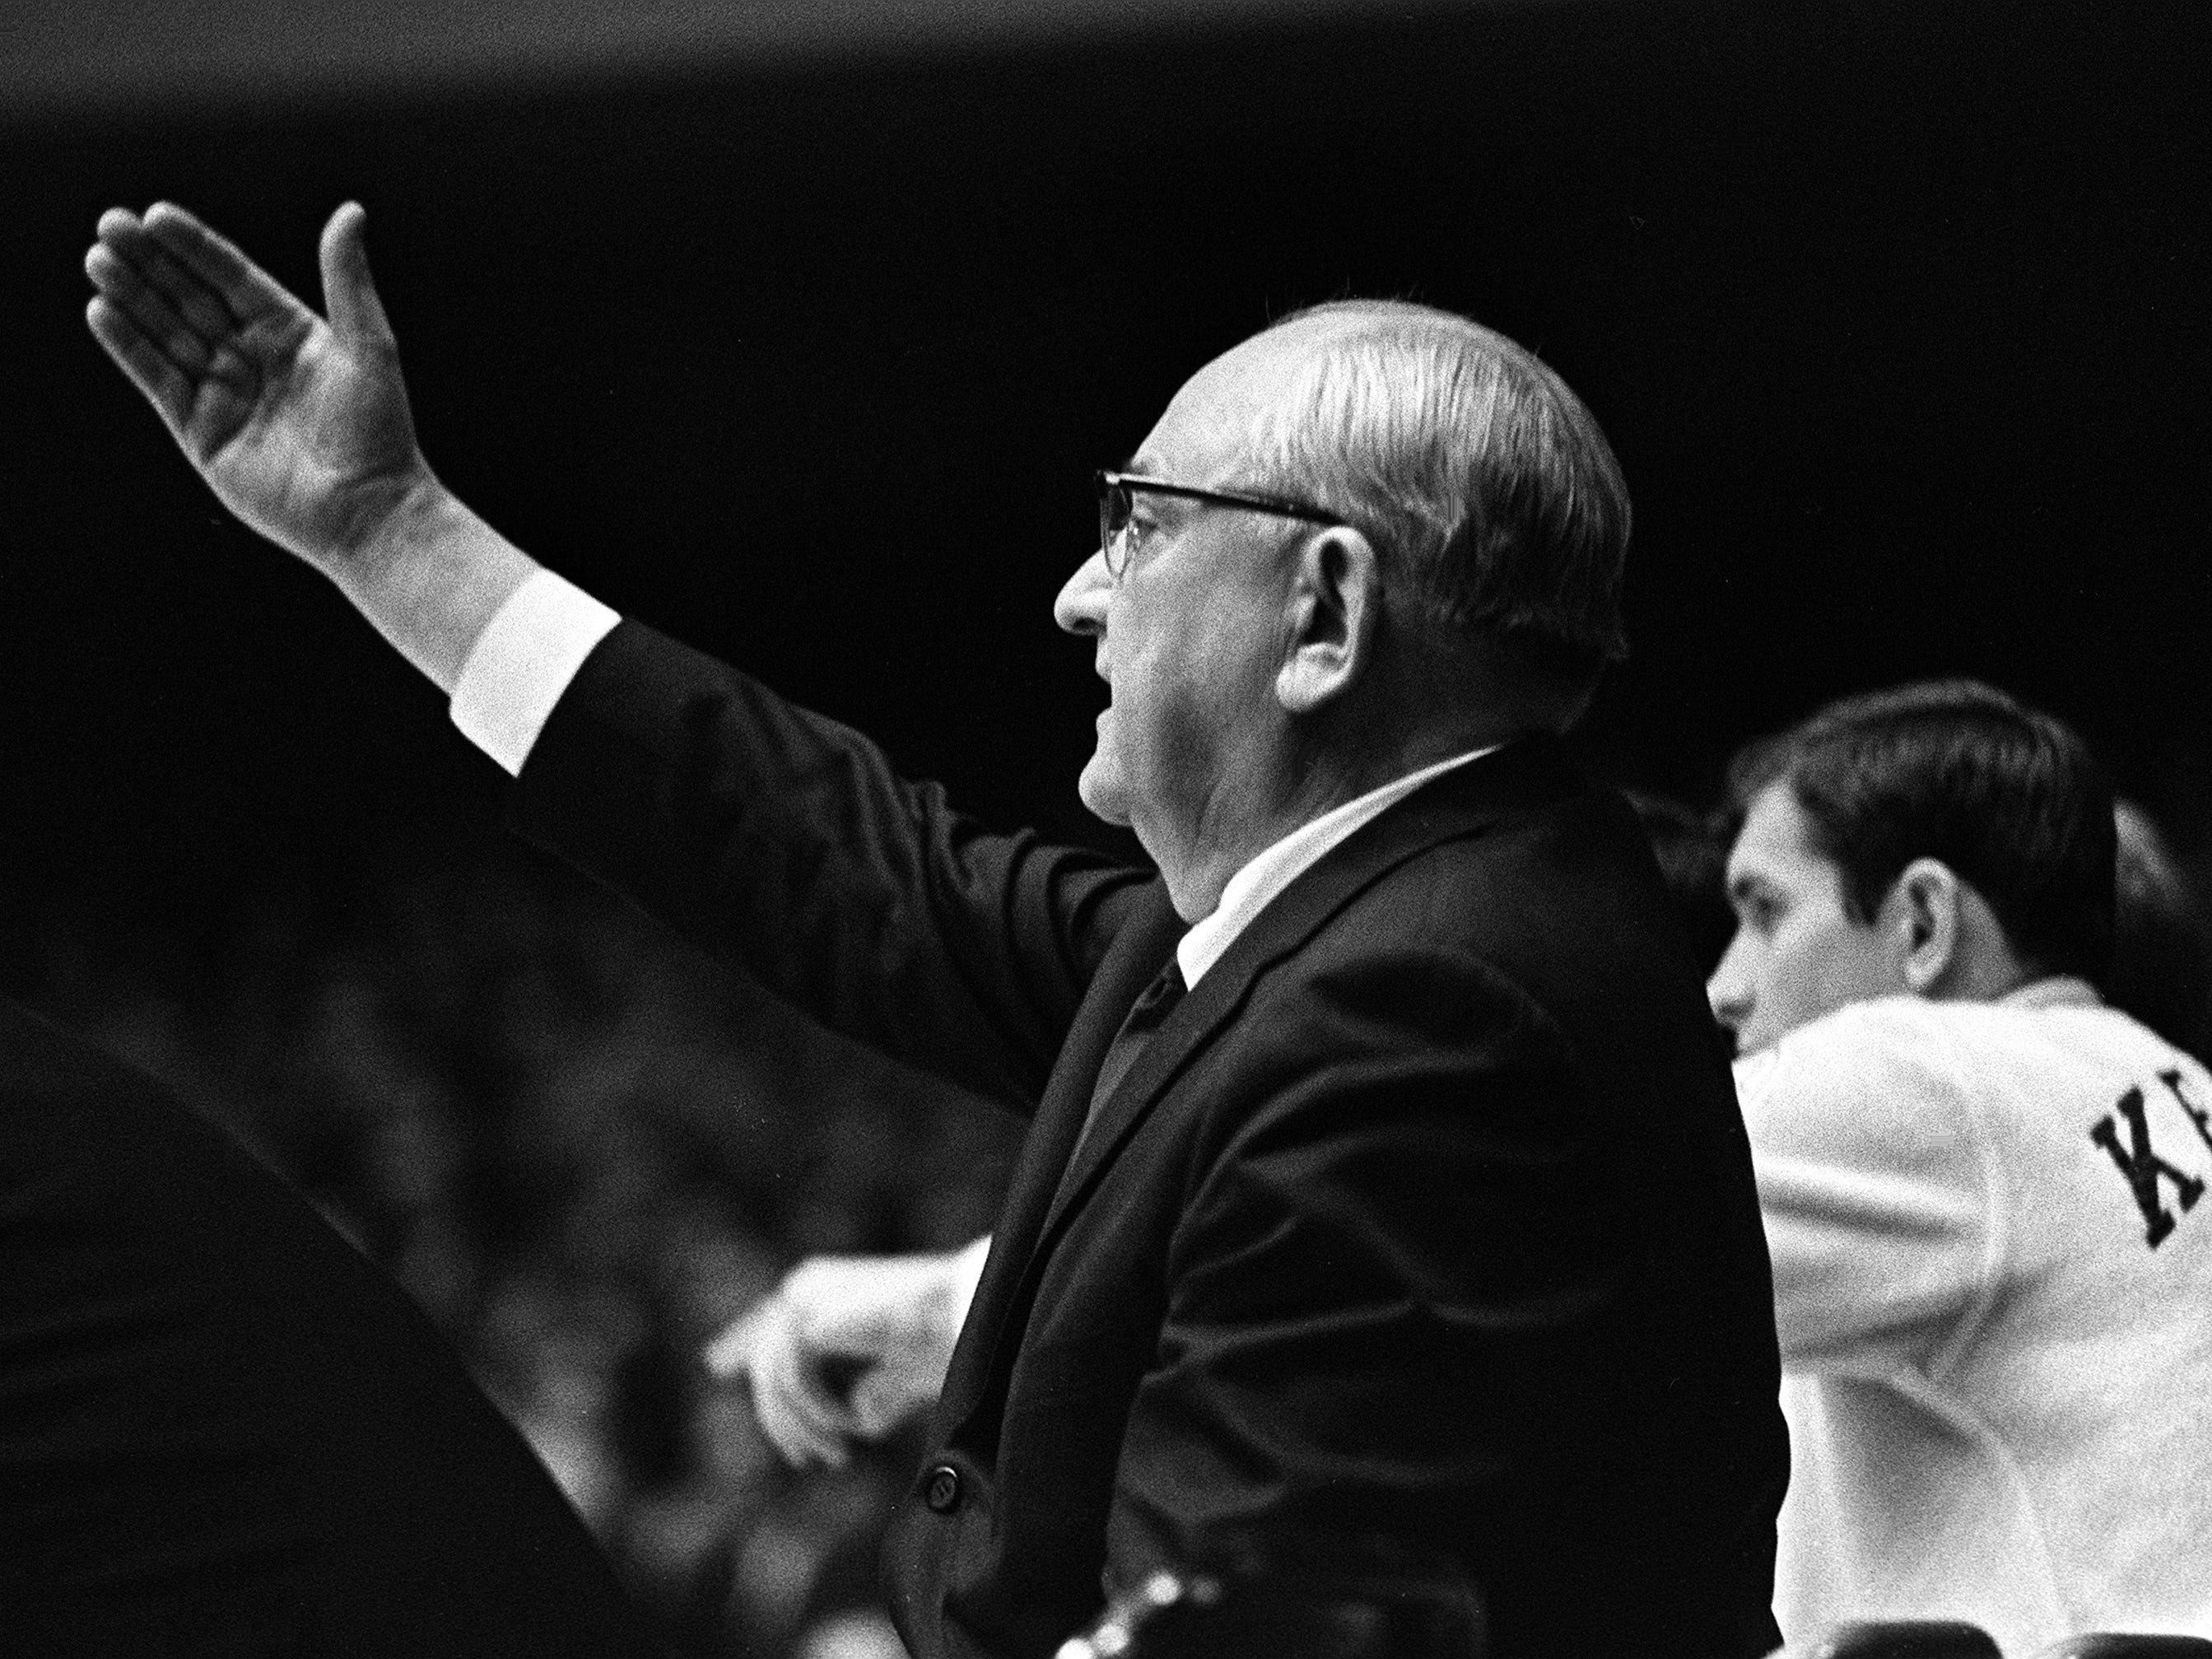 Kentucky head coach Adolph Rupp is giving instructions to his players in their game at Vanderbilt. The undefeated Wildcats won 105-90 over the Commodores before more than 9,500 fans in Memorial Gym Feb. 2, 1966.